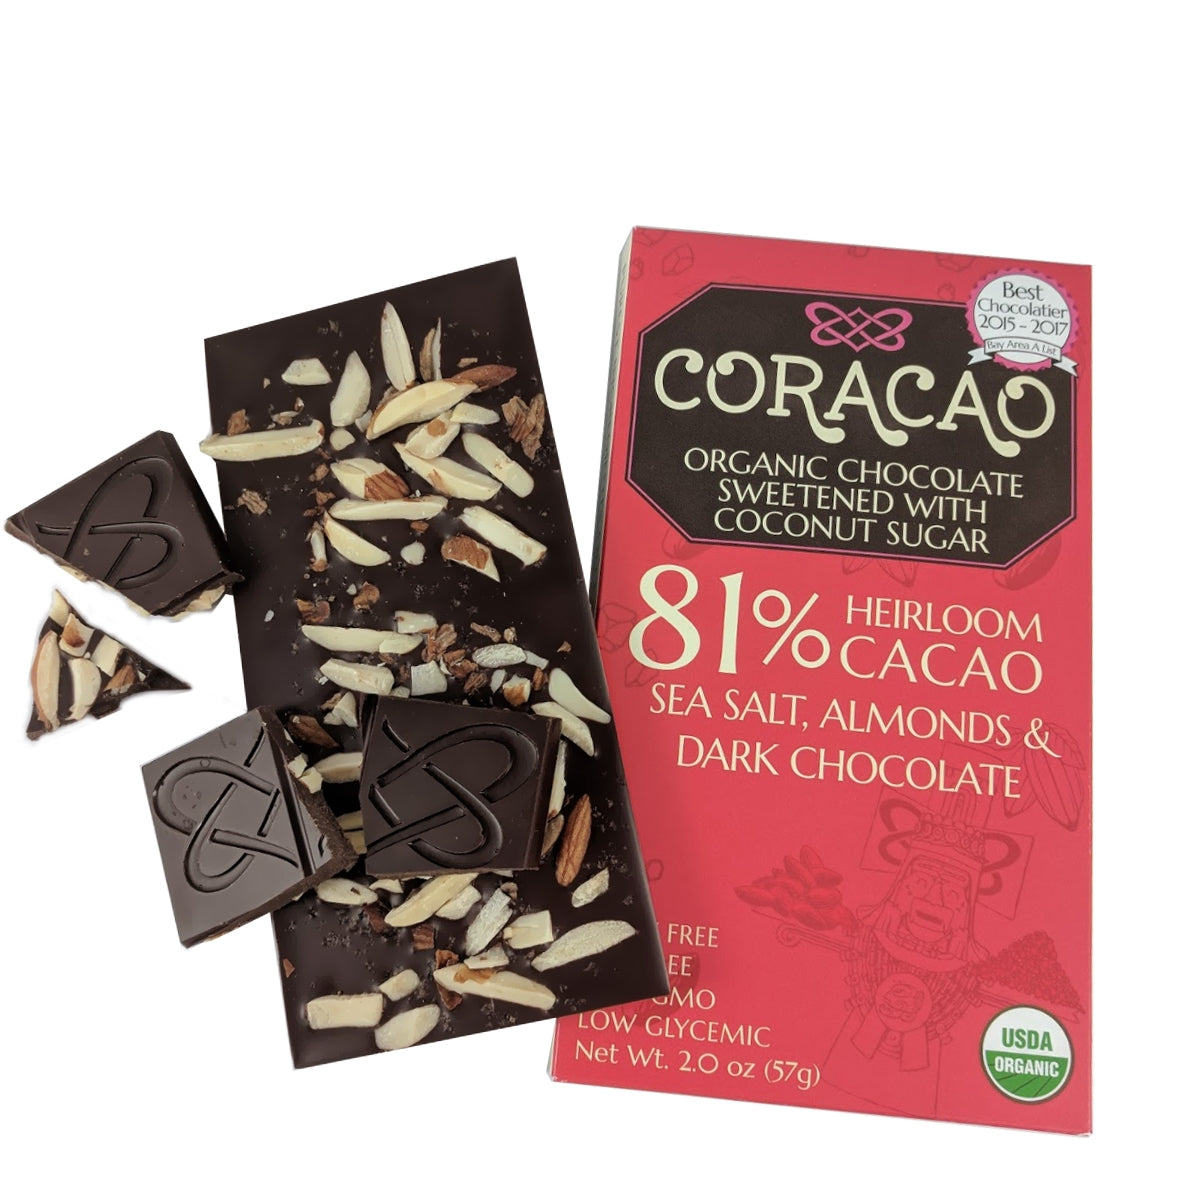 Coracao 81% Salted Almond Bar (2oz / 57g)